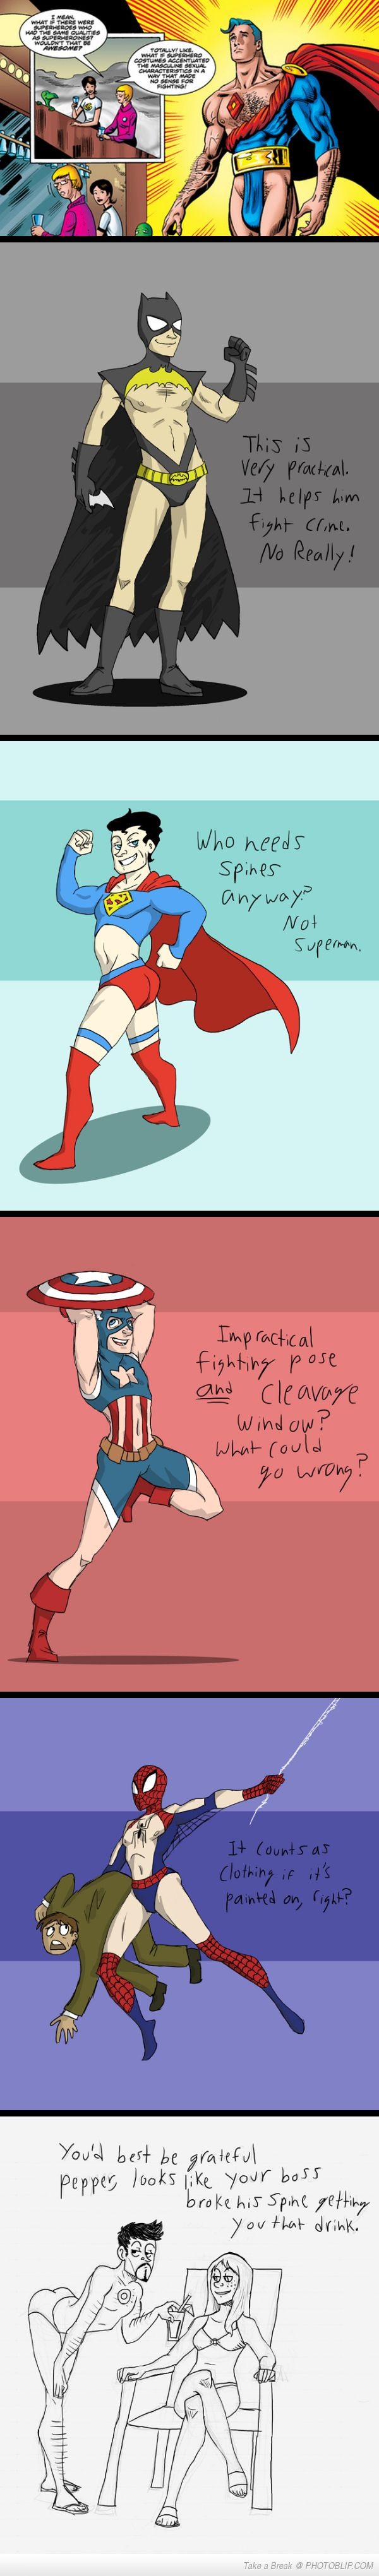 If Male Superhero Costumes Were Designed Like The Females